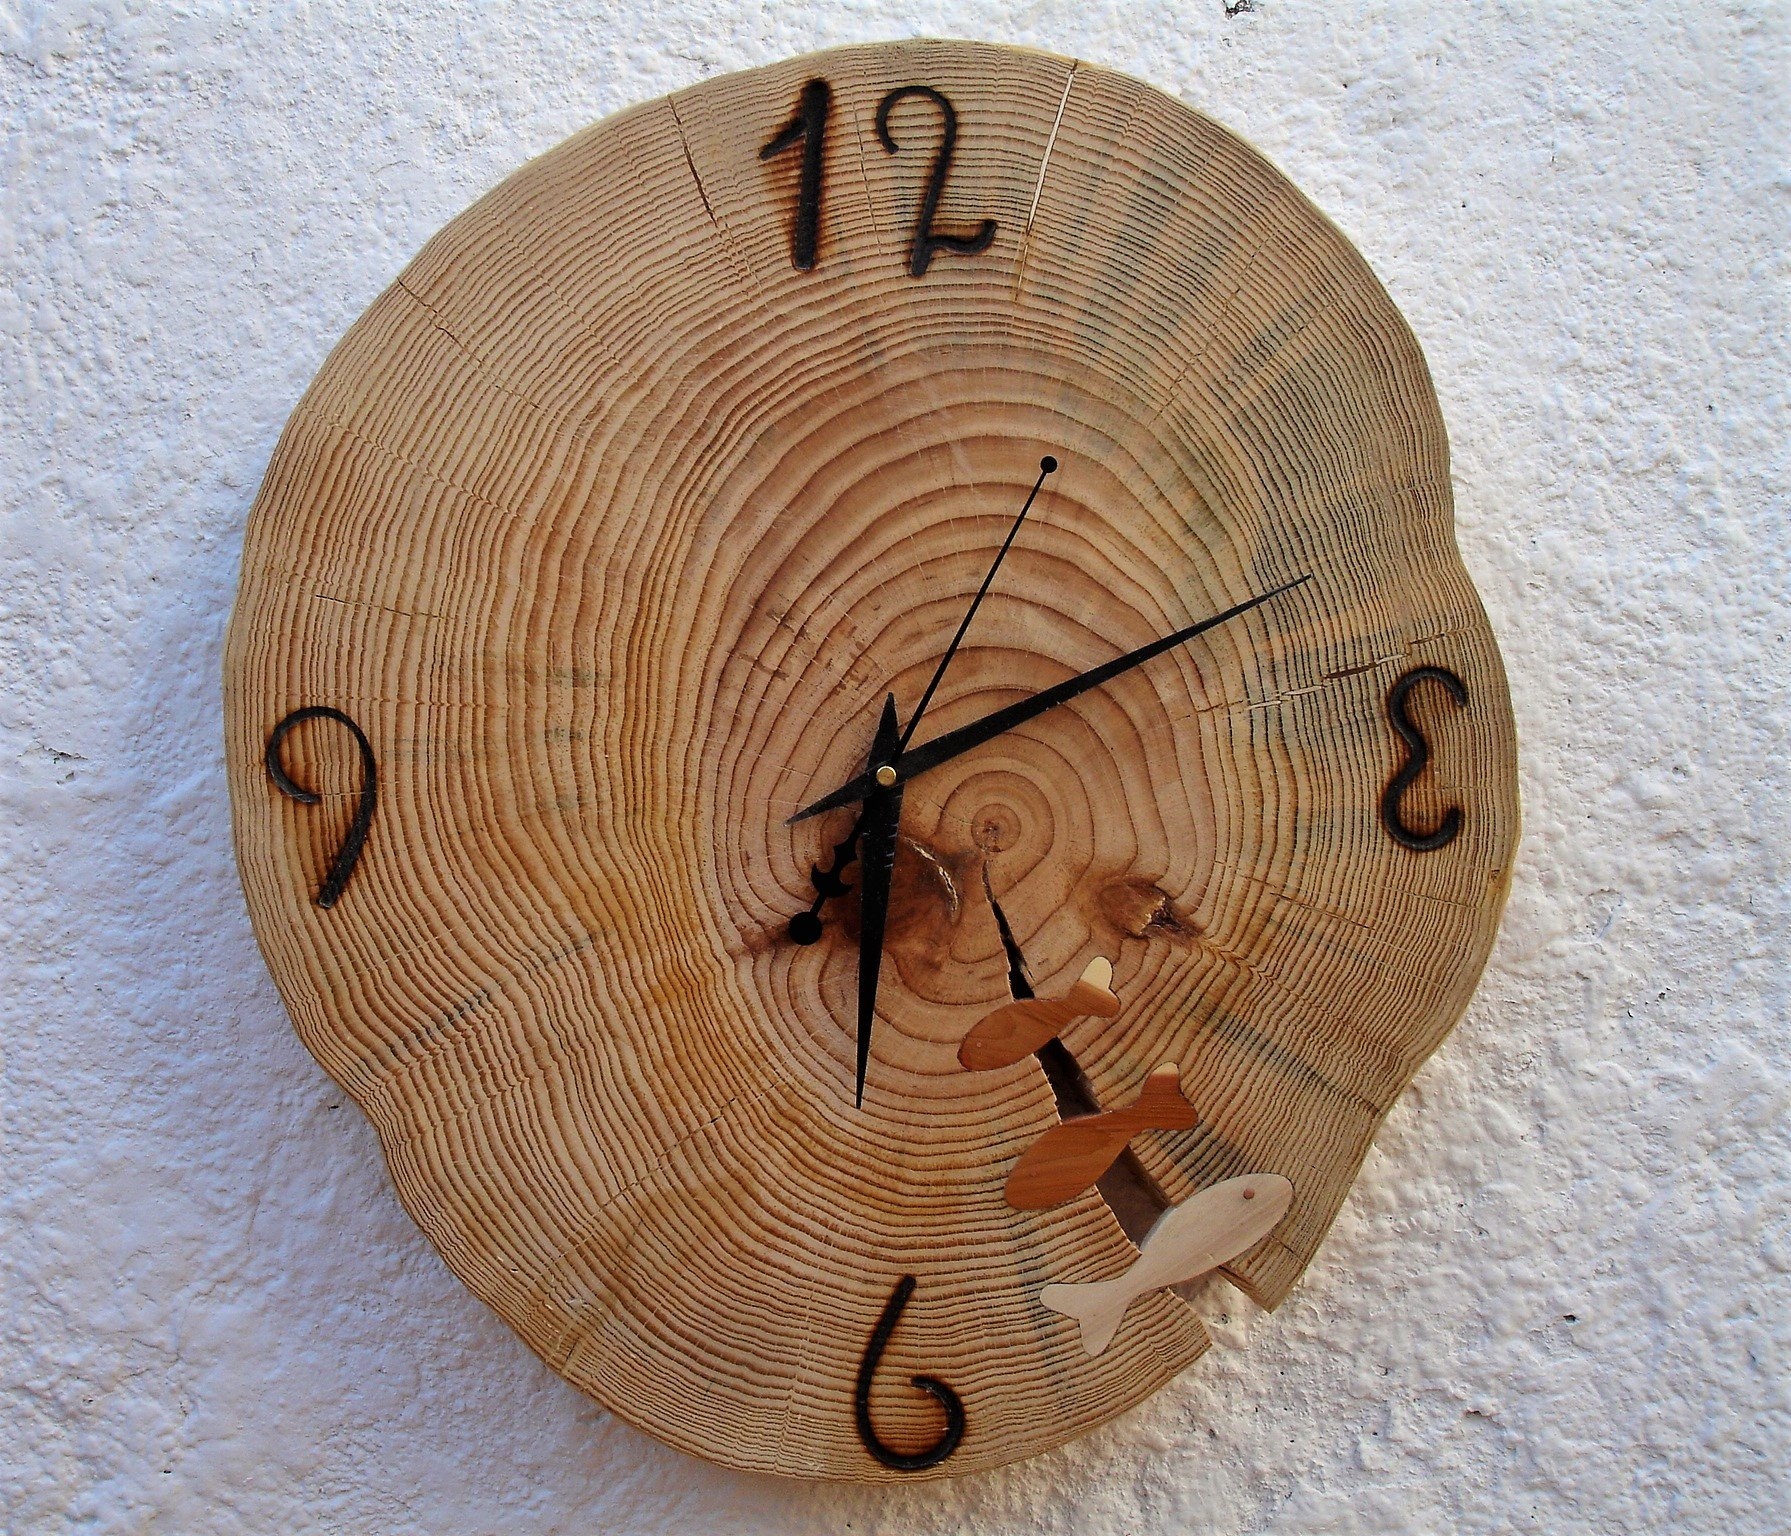 DIY Father's day gifts made from wood. Clock from a slice of tree